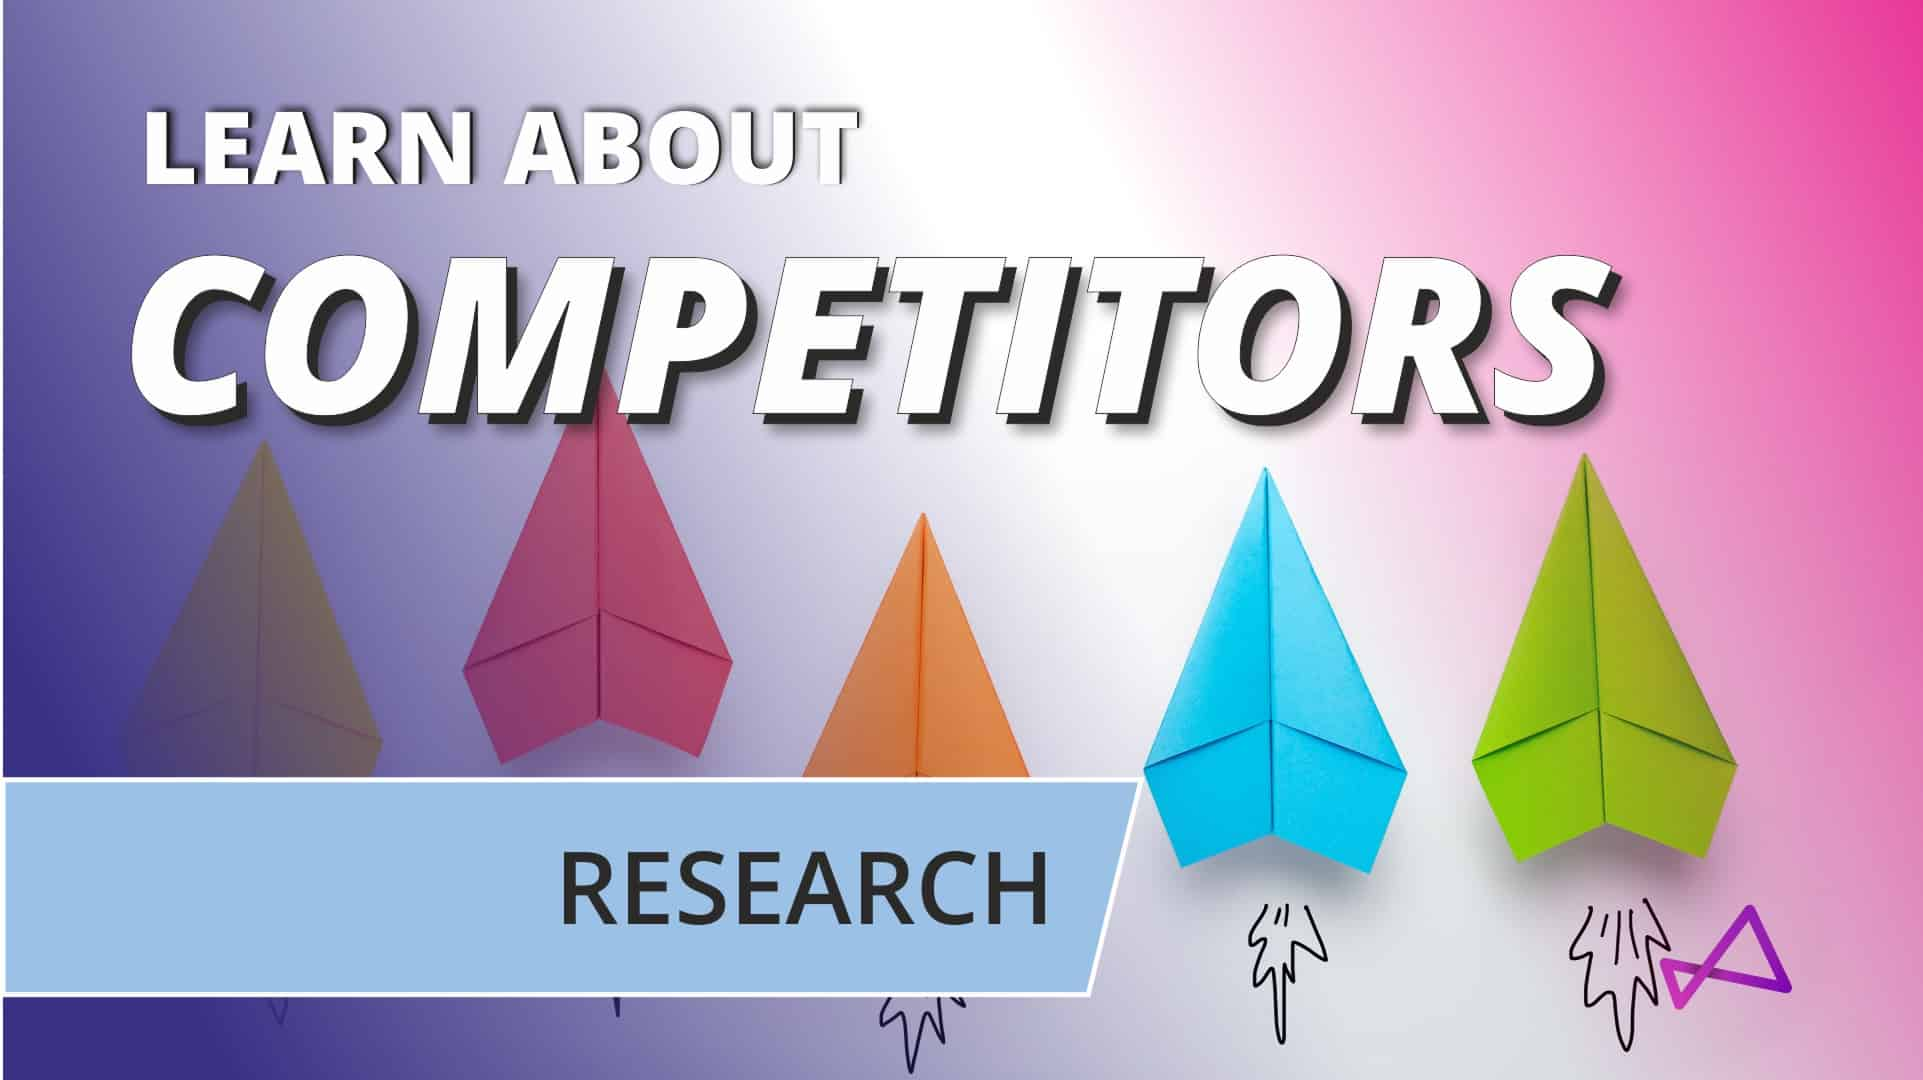 Competitor Research - learn more about